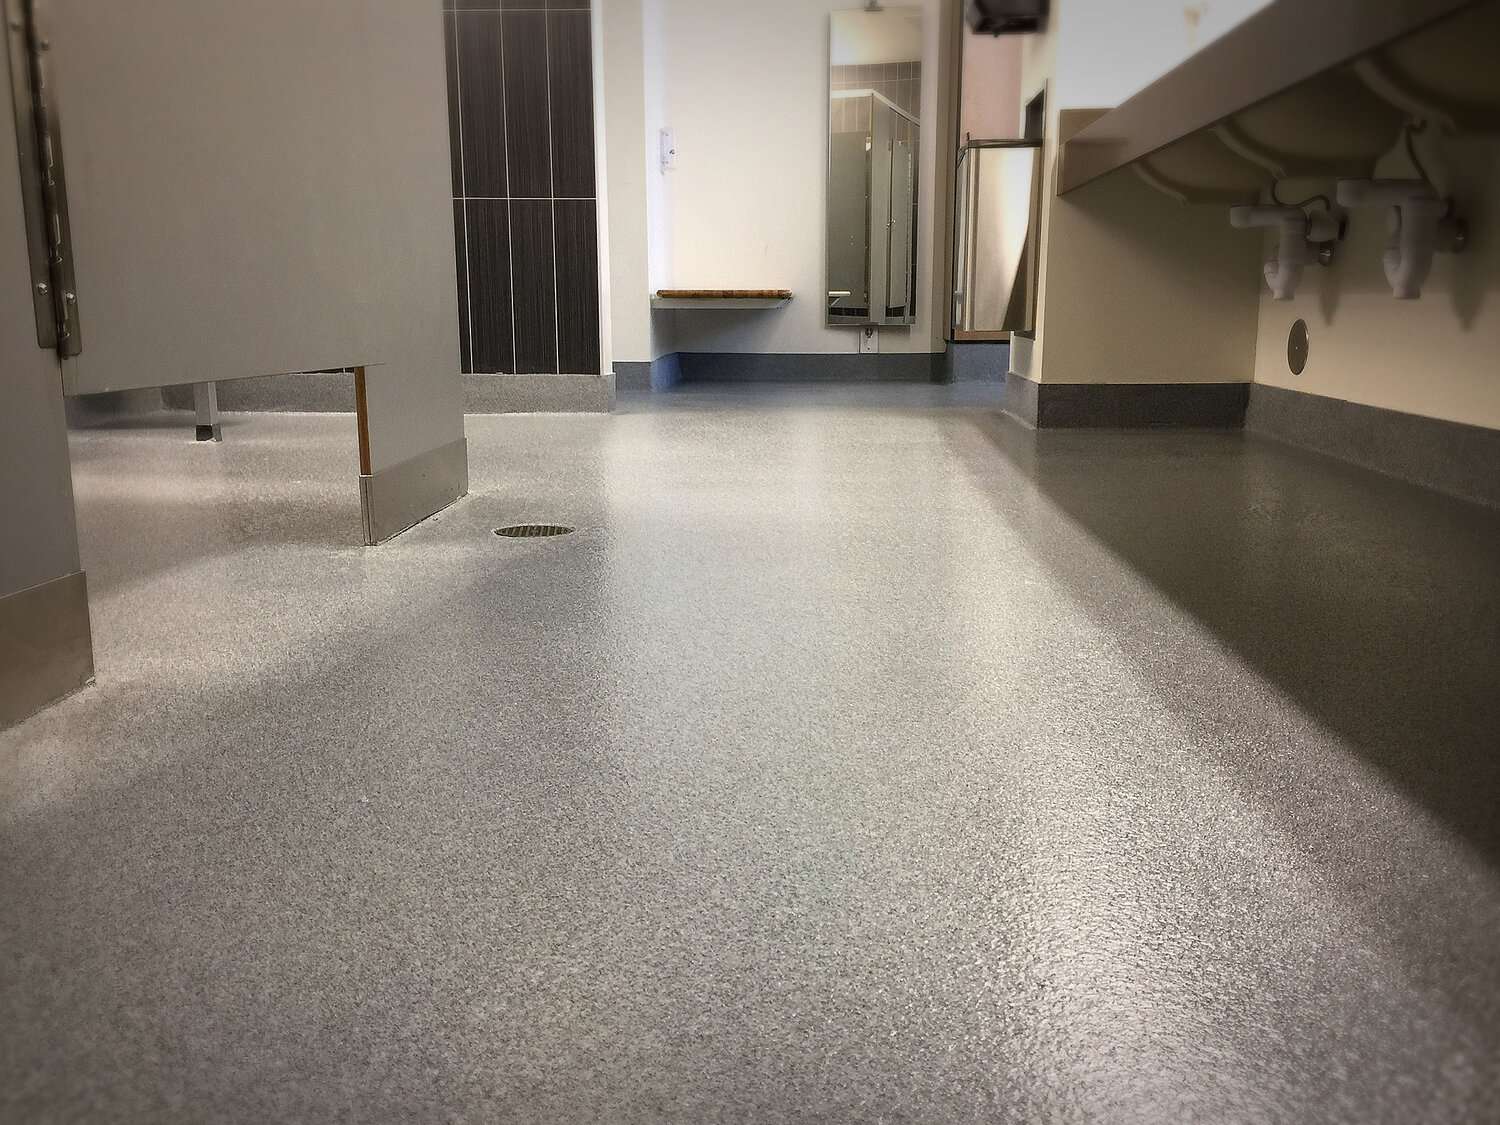 Epoxy Quartz Floors Concrete Visions